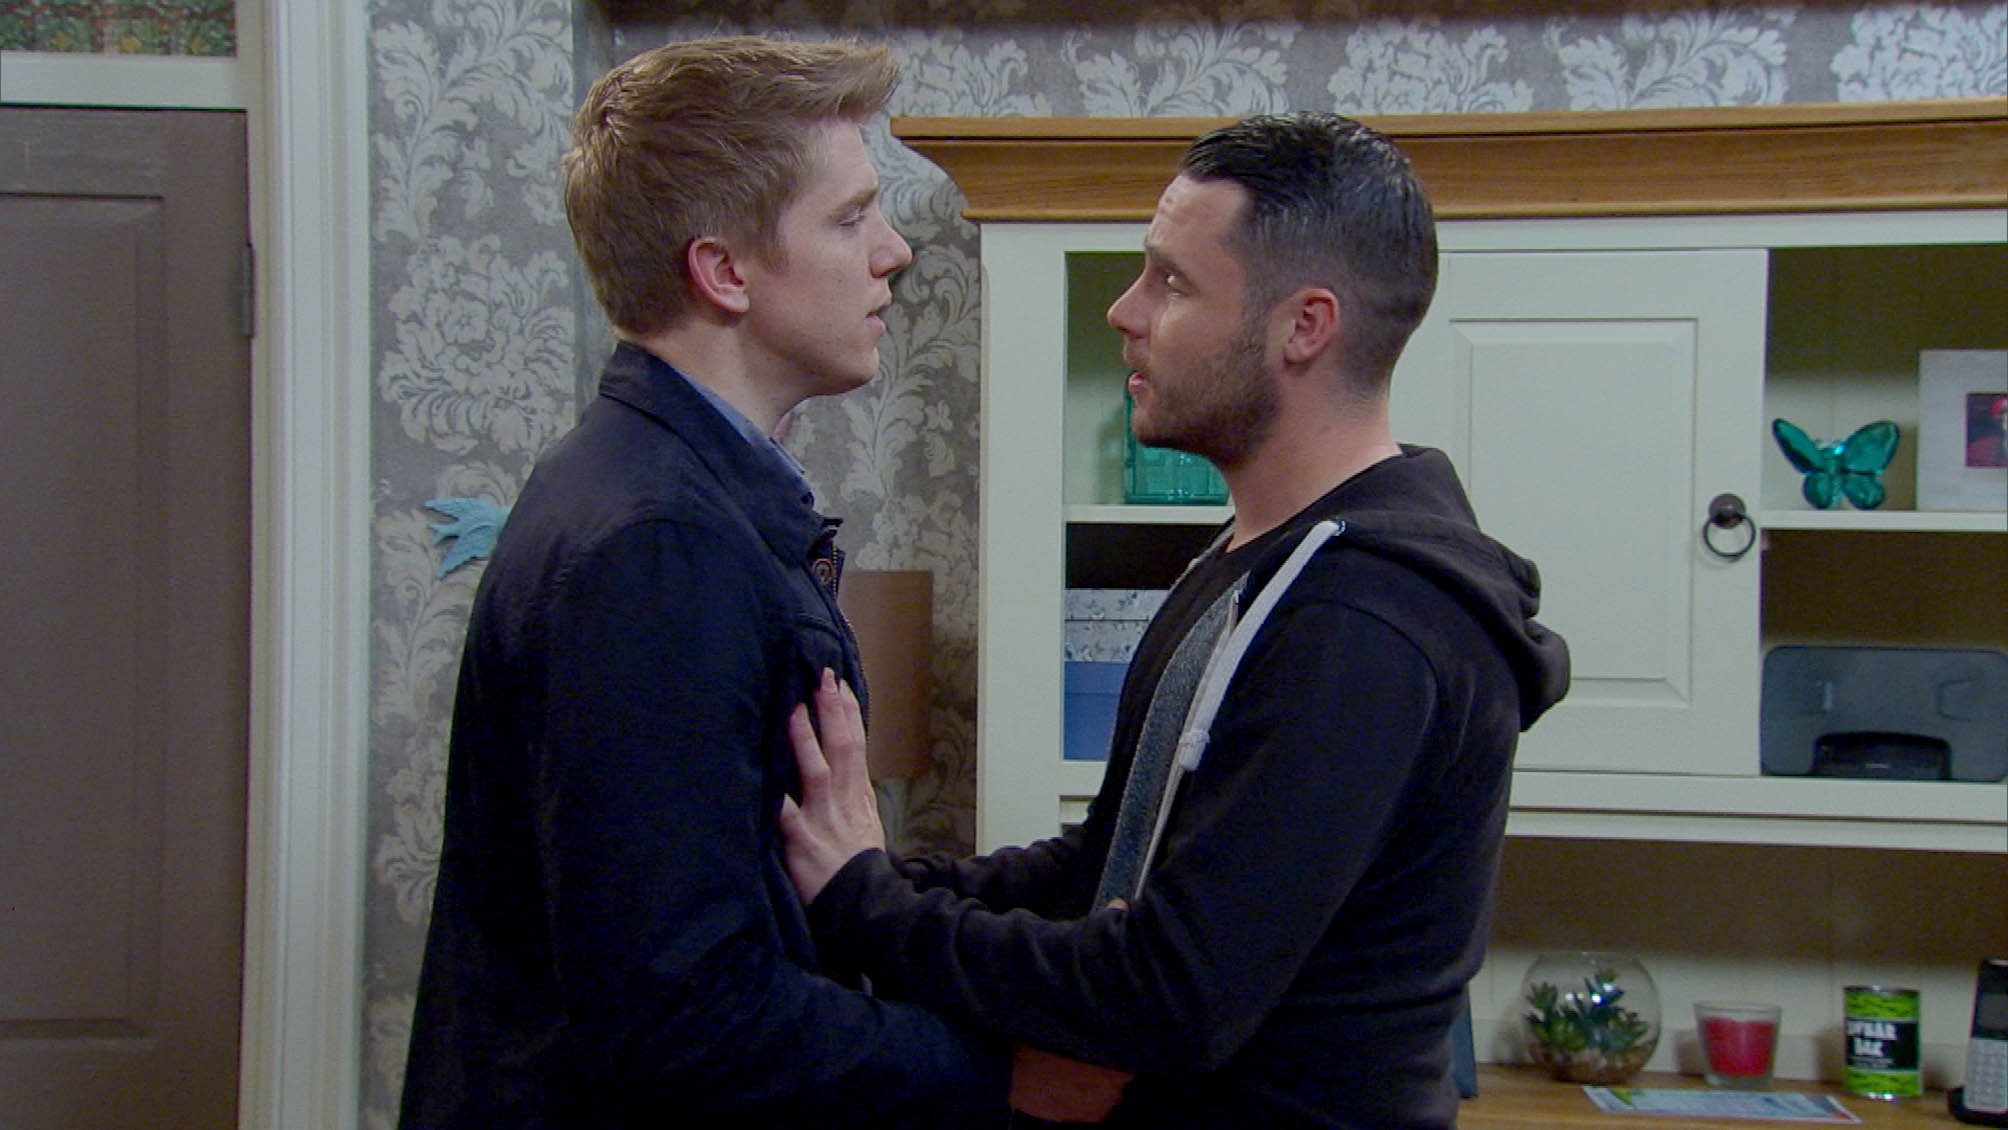 FROM ITV STRICT EMBARGO - No Use Before Tuesday 5 July 2016 Emmerdale - Ep 7555 Thursday 14 July 2016 - 1st Ep Aaron Dingle's [DANNY MILLER] embarrassed when Charity walks in on him and Robert Sugden [RYAN HAWLEY] in the shower. Aaron starts to broach the subject of moving in together to Robert but they're interrupted again, this time by a police officer who says there's new evidence showing Robert bribed Ryan... Picture contact: david.crook@itv.com on 0161 952 6214 Photographer - Andrew BOyce This photograph is (C) ITV Plc and can only be reproduced for editorial purposes directly in connection with the programme or event mentioned above, or ITV plc. Once made available by ITV plc Picture Desk, this photograph can be reproduced once only up until the transmission [TX] date and no reproduction fee will be charged. Any subsequent usage may incur a fee. This photograph must not be manipulated [excluding basic cropping] in a manner which alters the visual appearance of the person photographed deemed detrimental or inappropriate by ITV plc Picture Desk. This photograph must not be syndicated to any other company, publication or website, or permanently archived, without the express written permission of ITV Plc Picture Desk. Full Terms and conditions are available on the website www.itvpictures.com